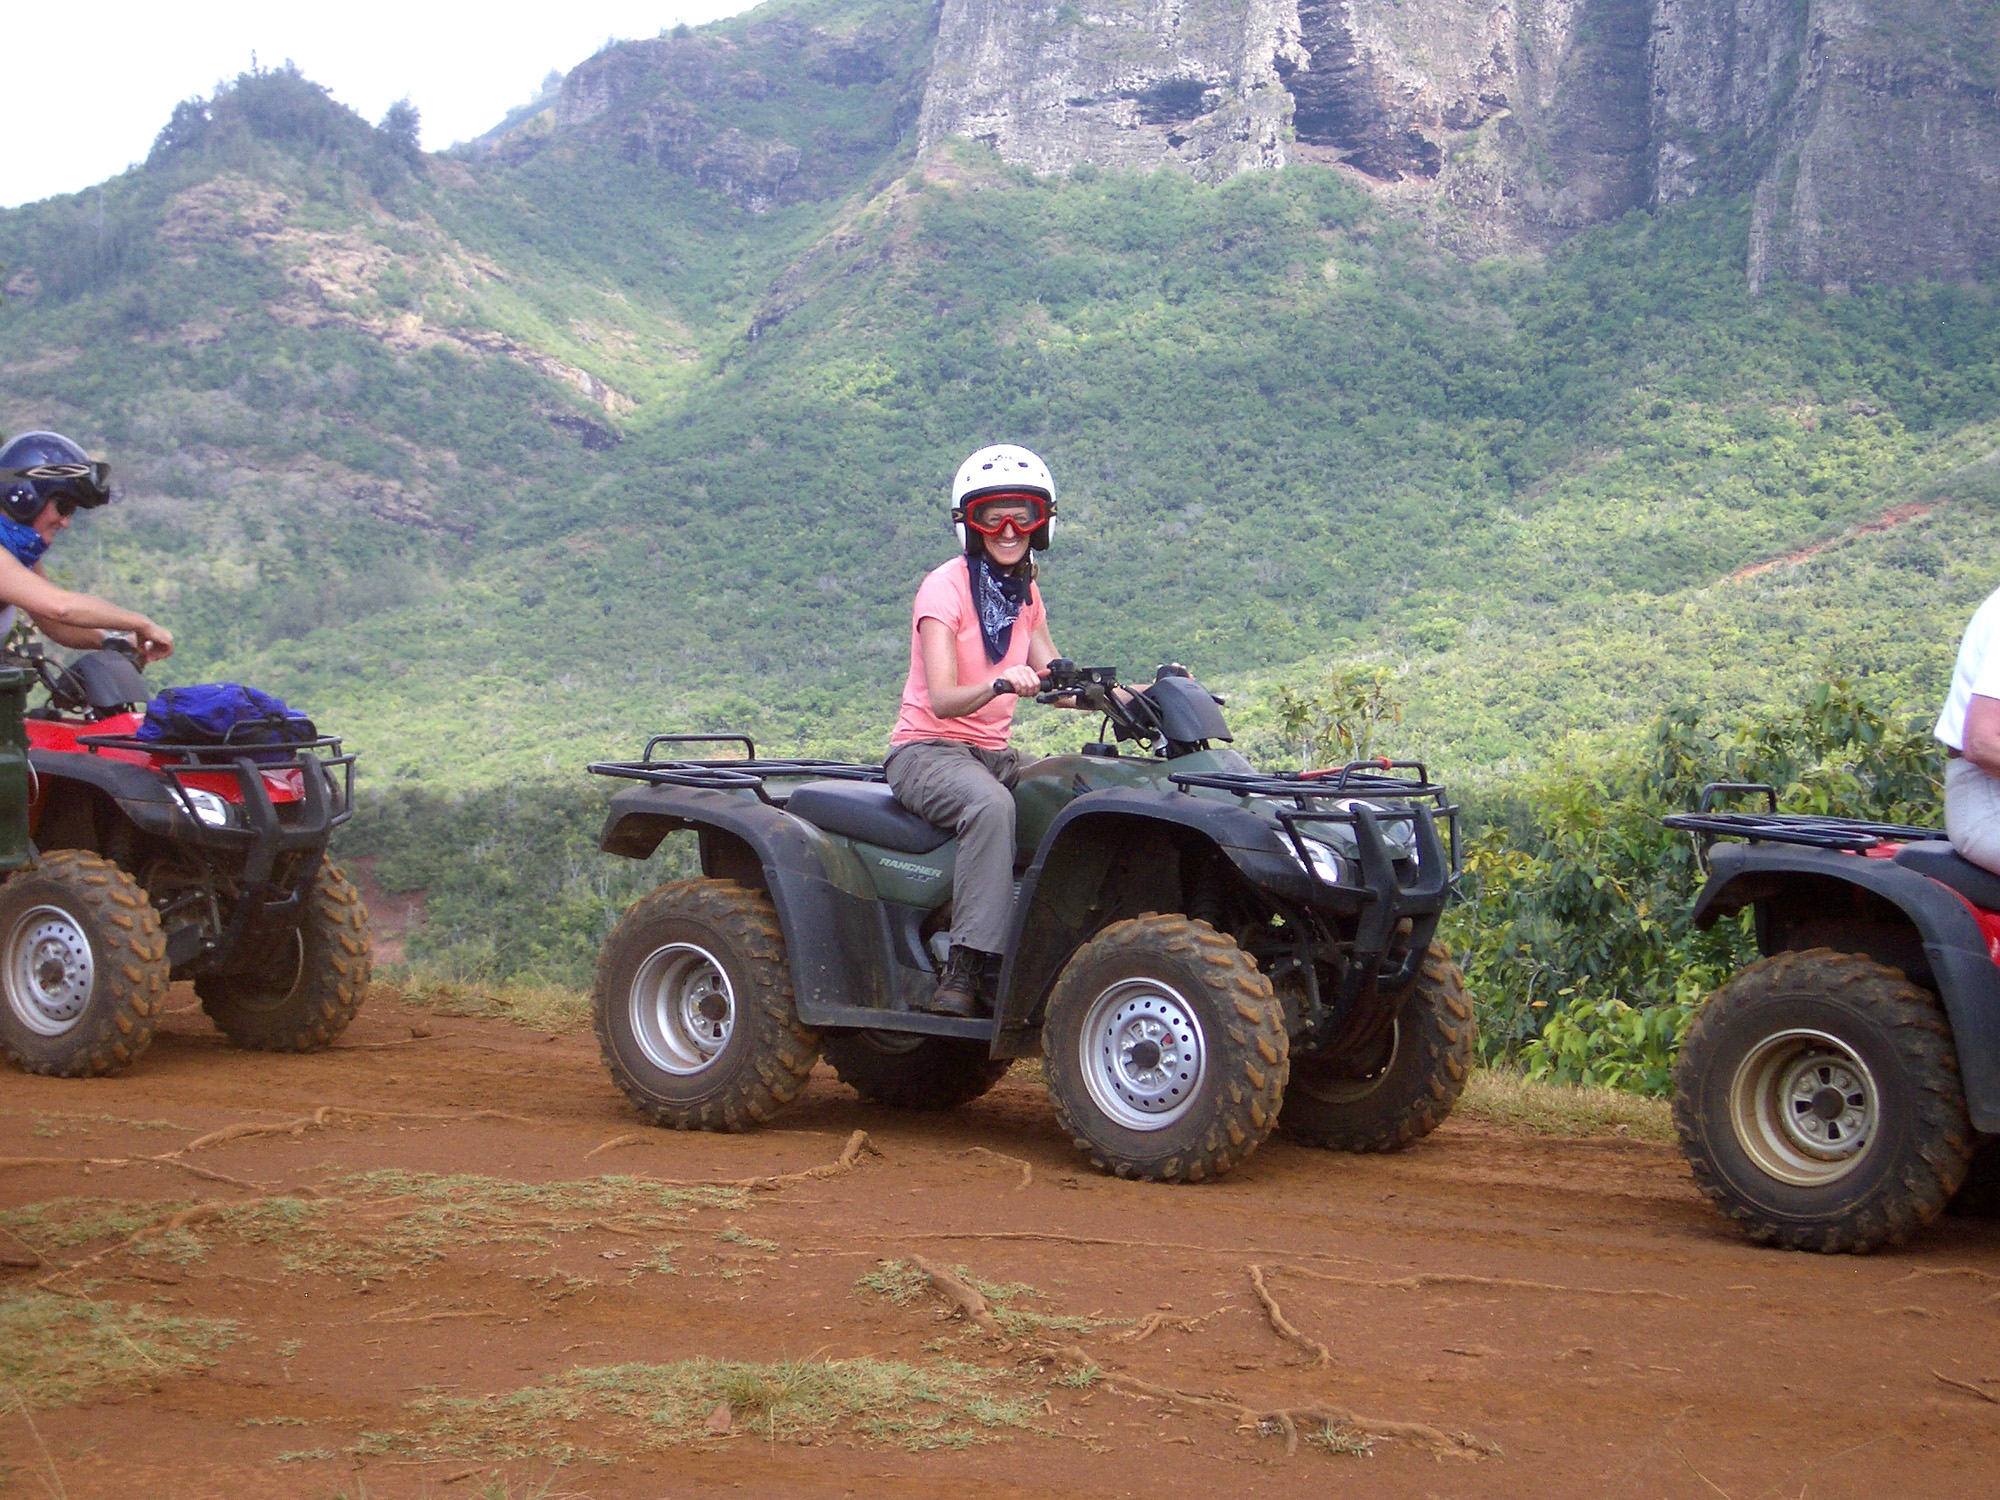 Touring San Juan by ATV is an adventurous things to do in Puerto Rico